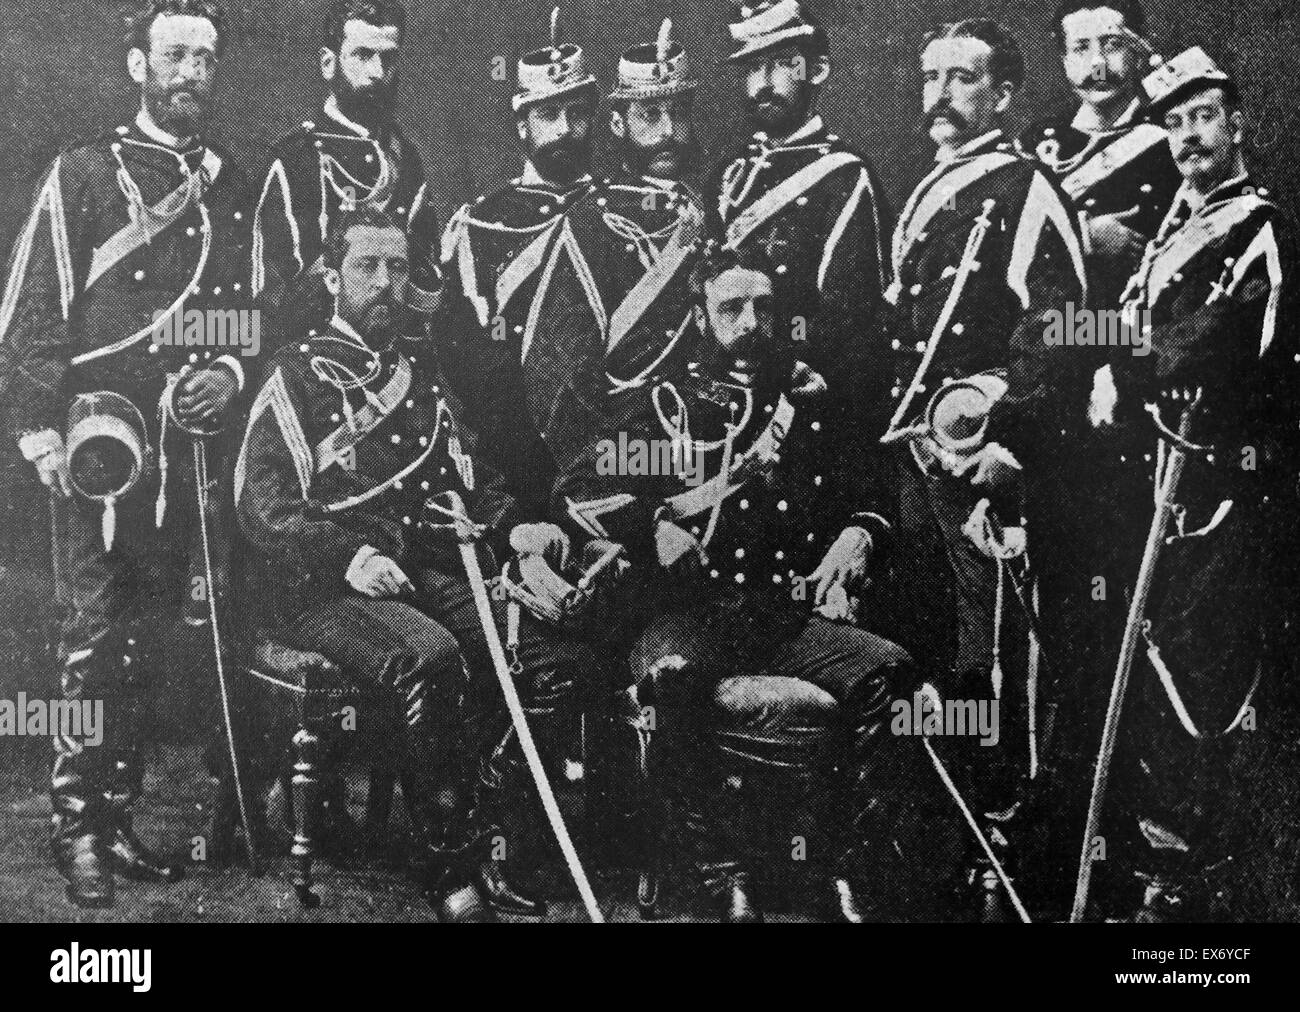 Group Of Spanish Army Officers In Dress Uniforms Circa 1890 Stock Photo Alamy